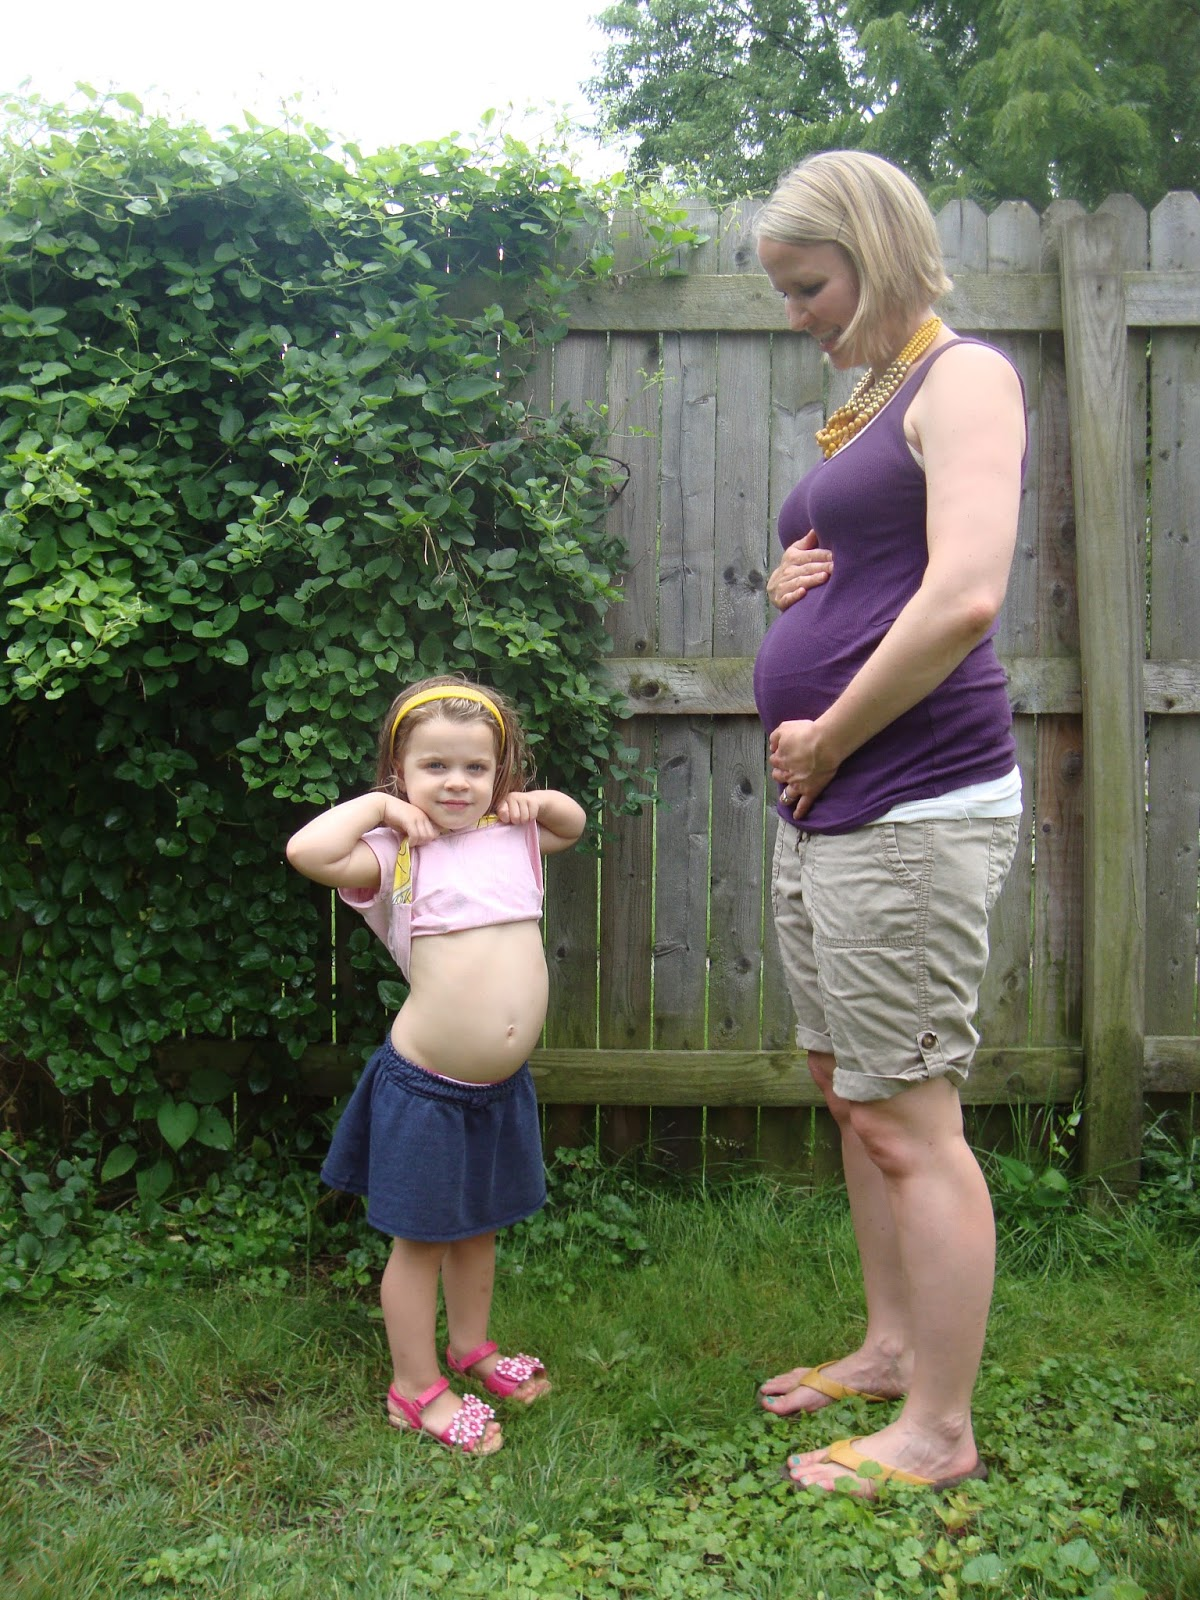 Pregnant Weeks 8 Bloated And